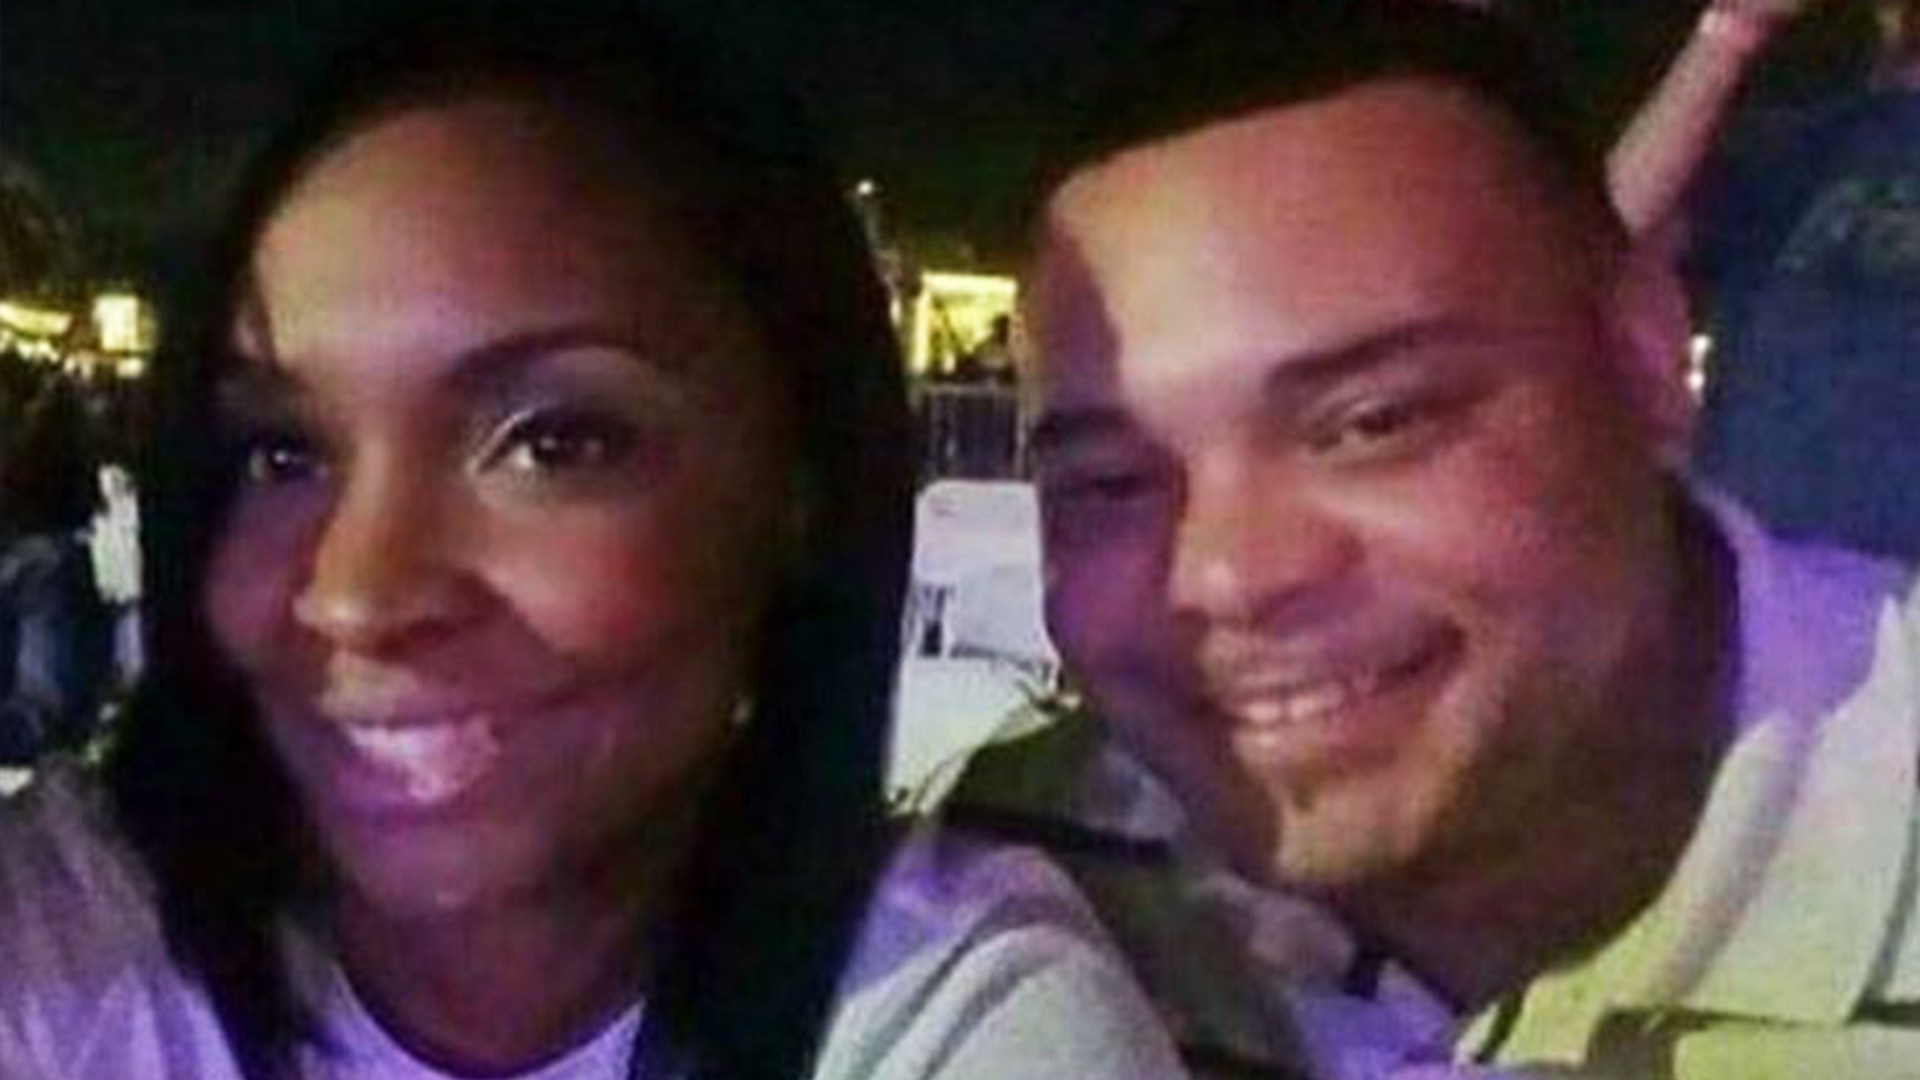 Texas man charged with capital murder in deaths of Houston friends missing since 2016